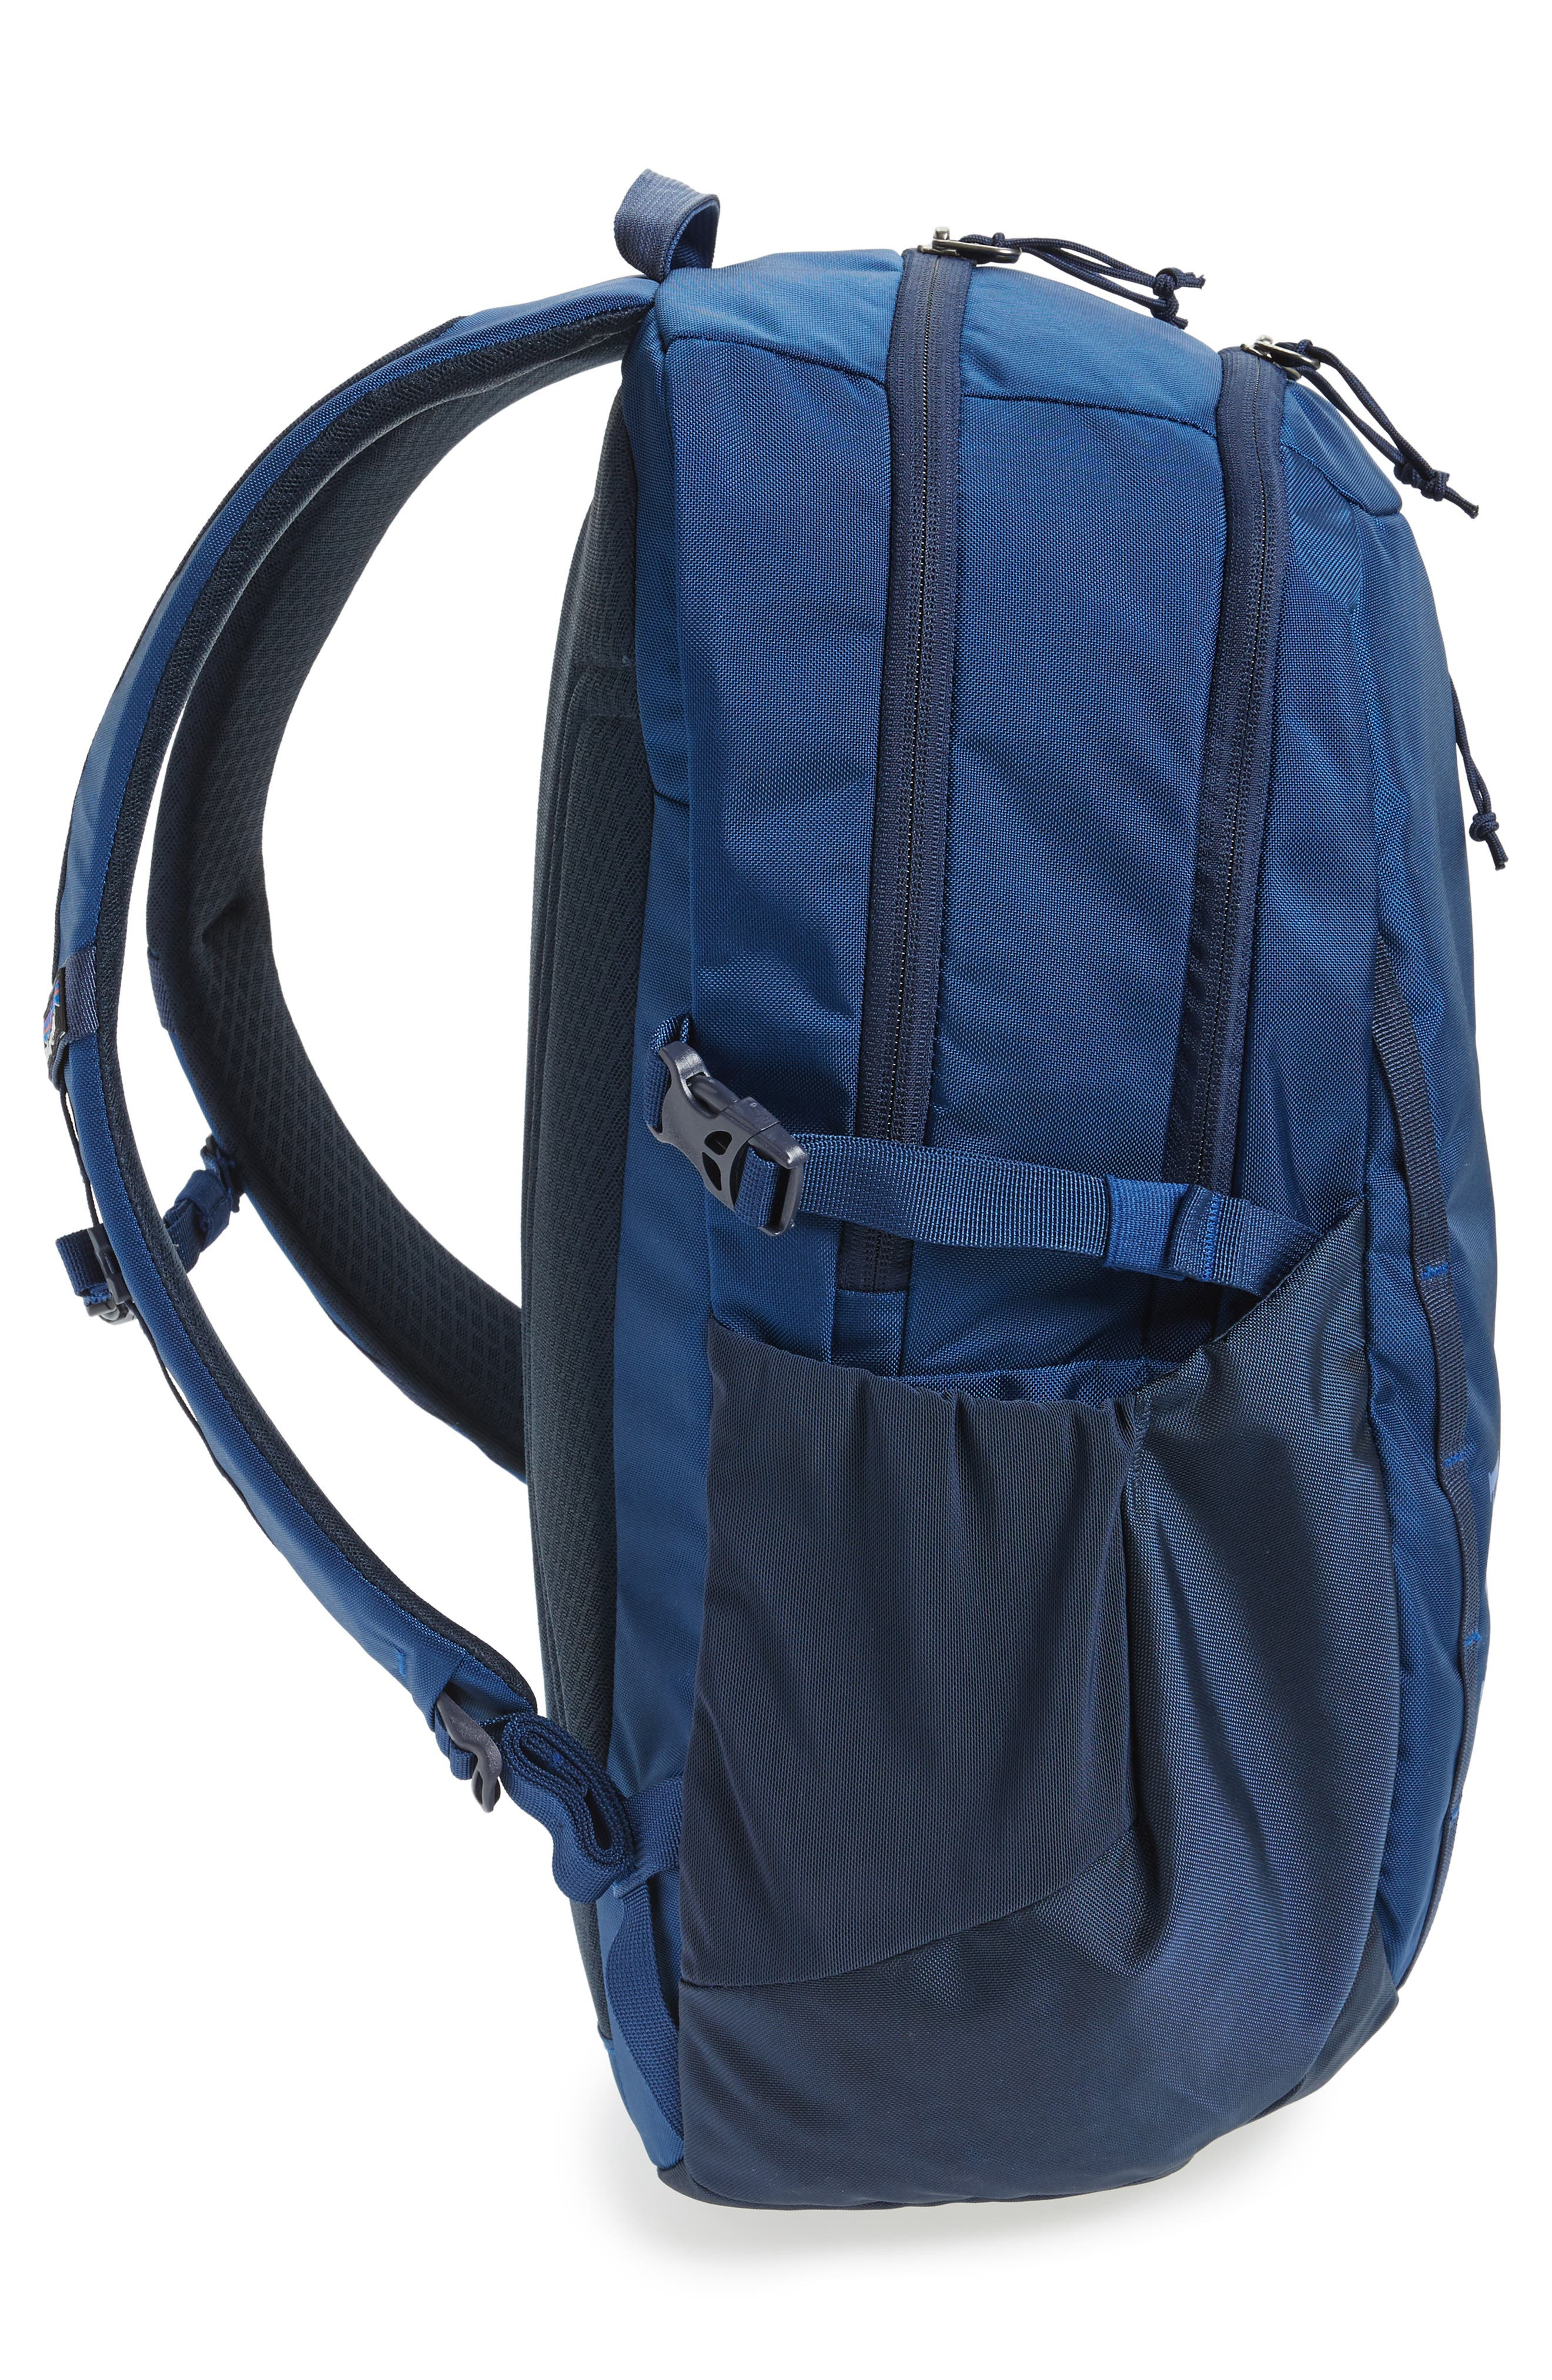 28L Refugio Backpack,                             Alternate thumbnail 5, color,                             Navy Blue